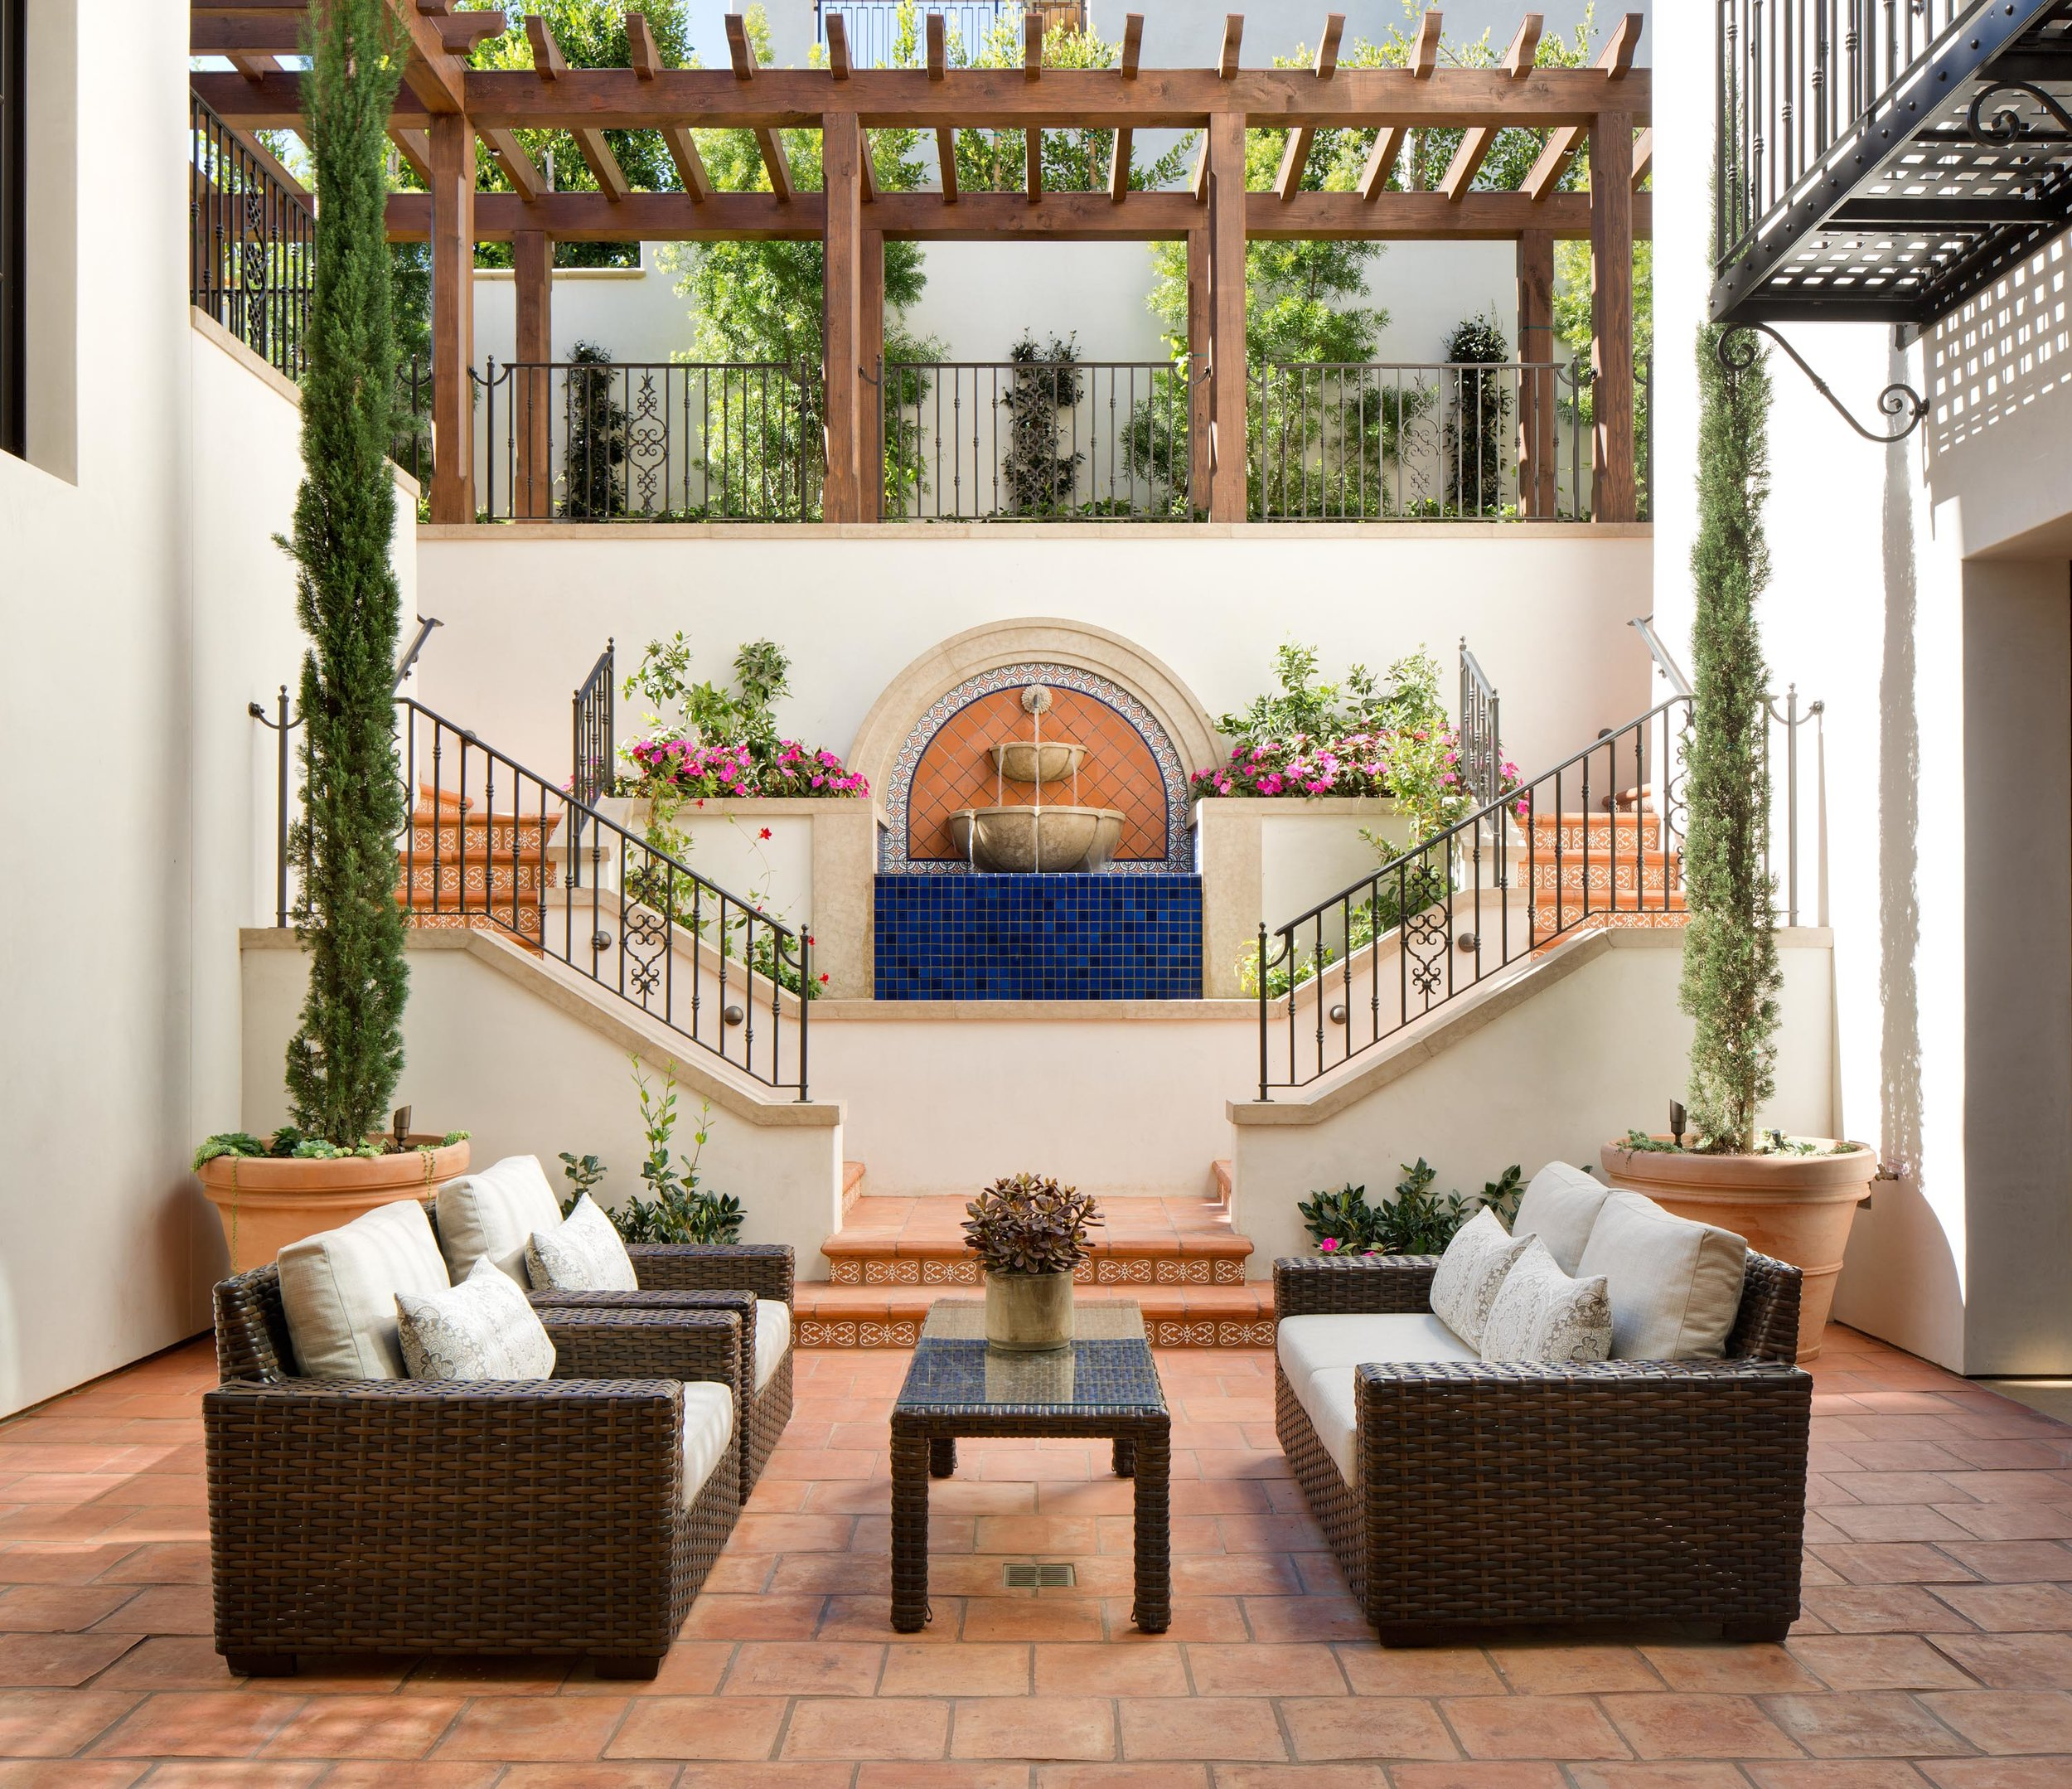 Newport Coast Santa Barbara Style Courtyard by Oatman Architects.jpg